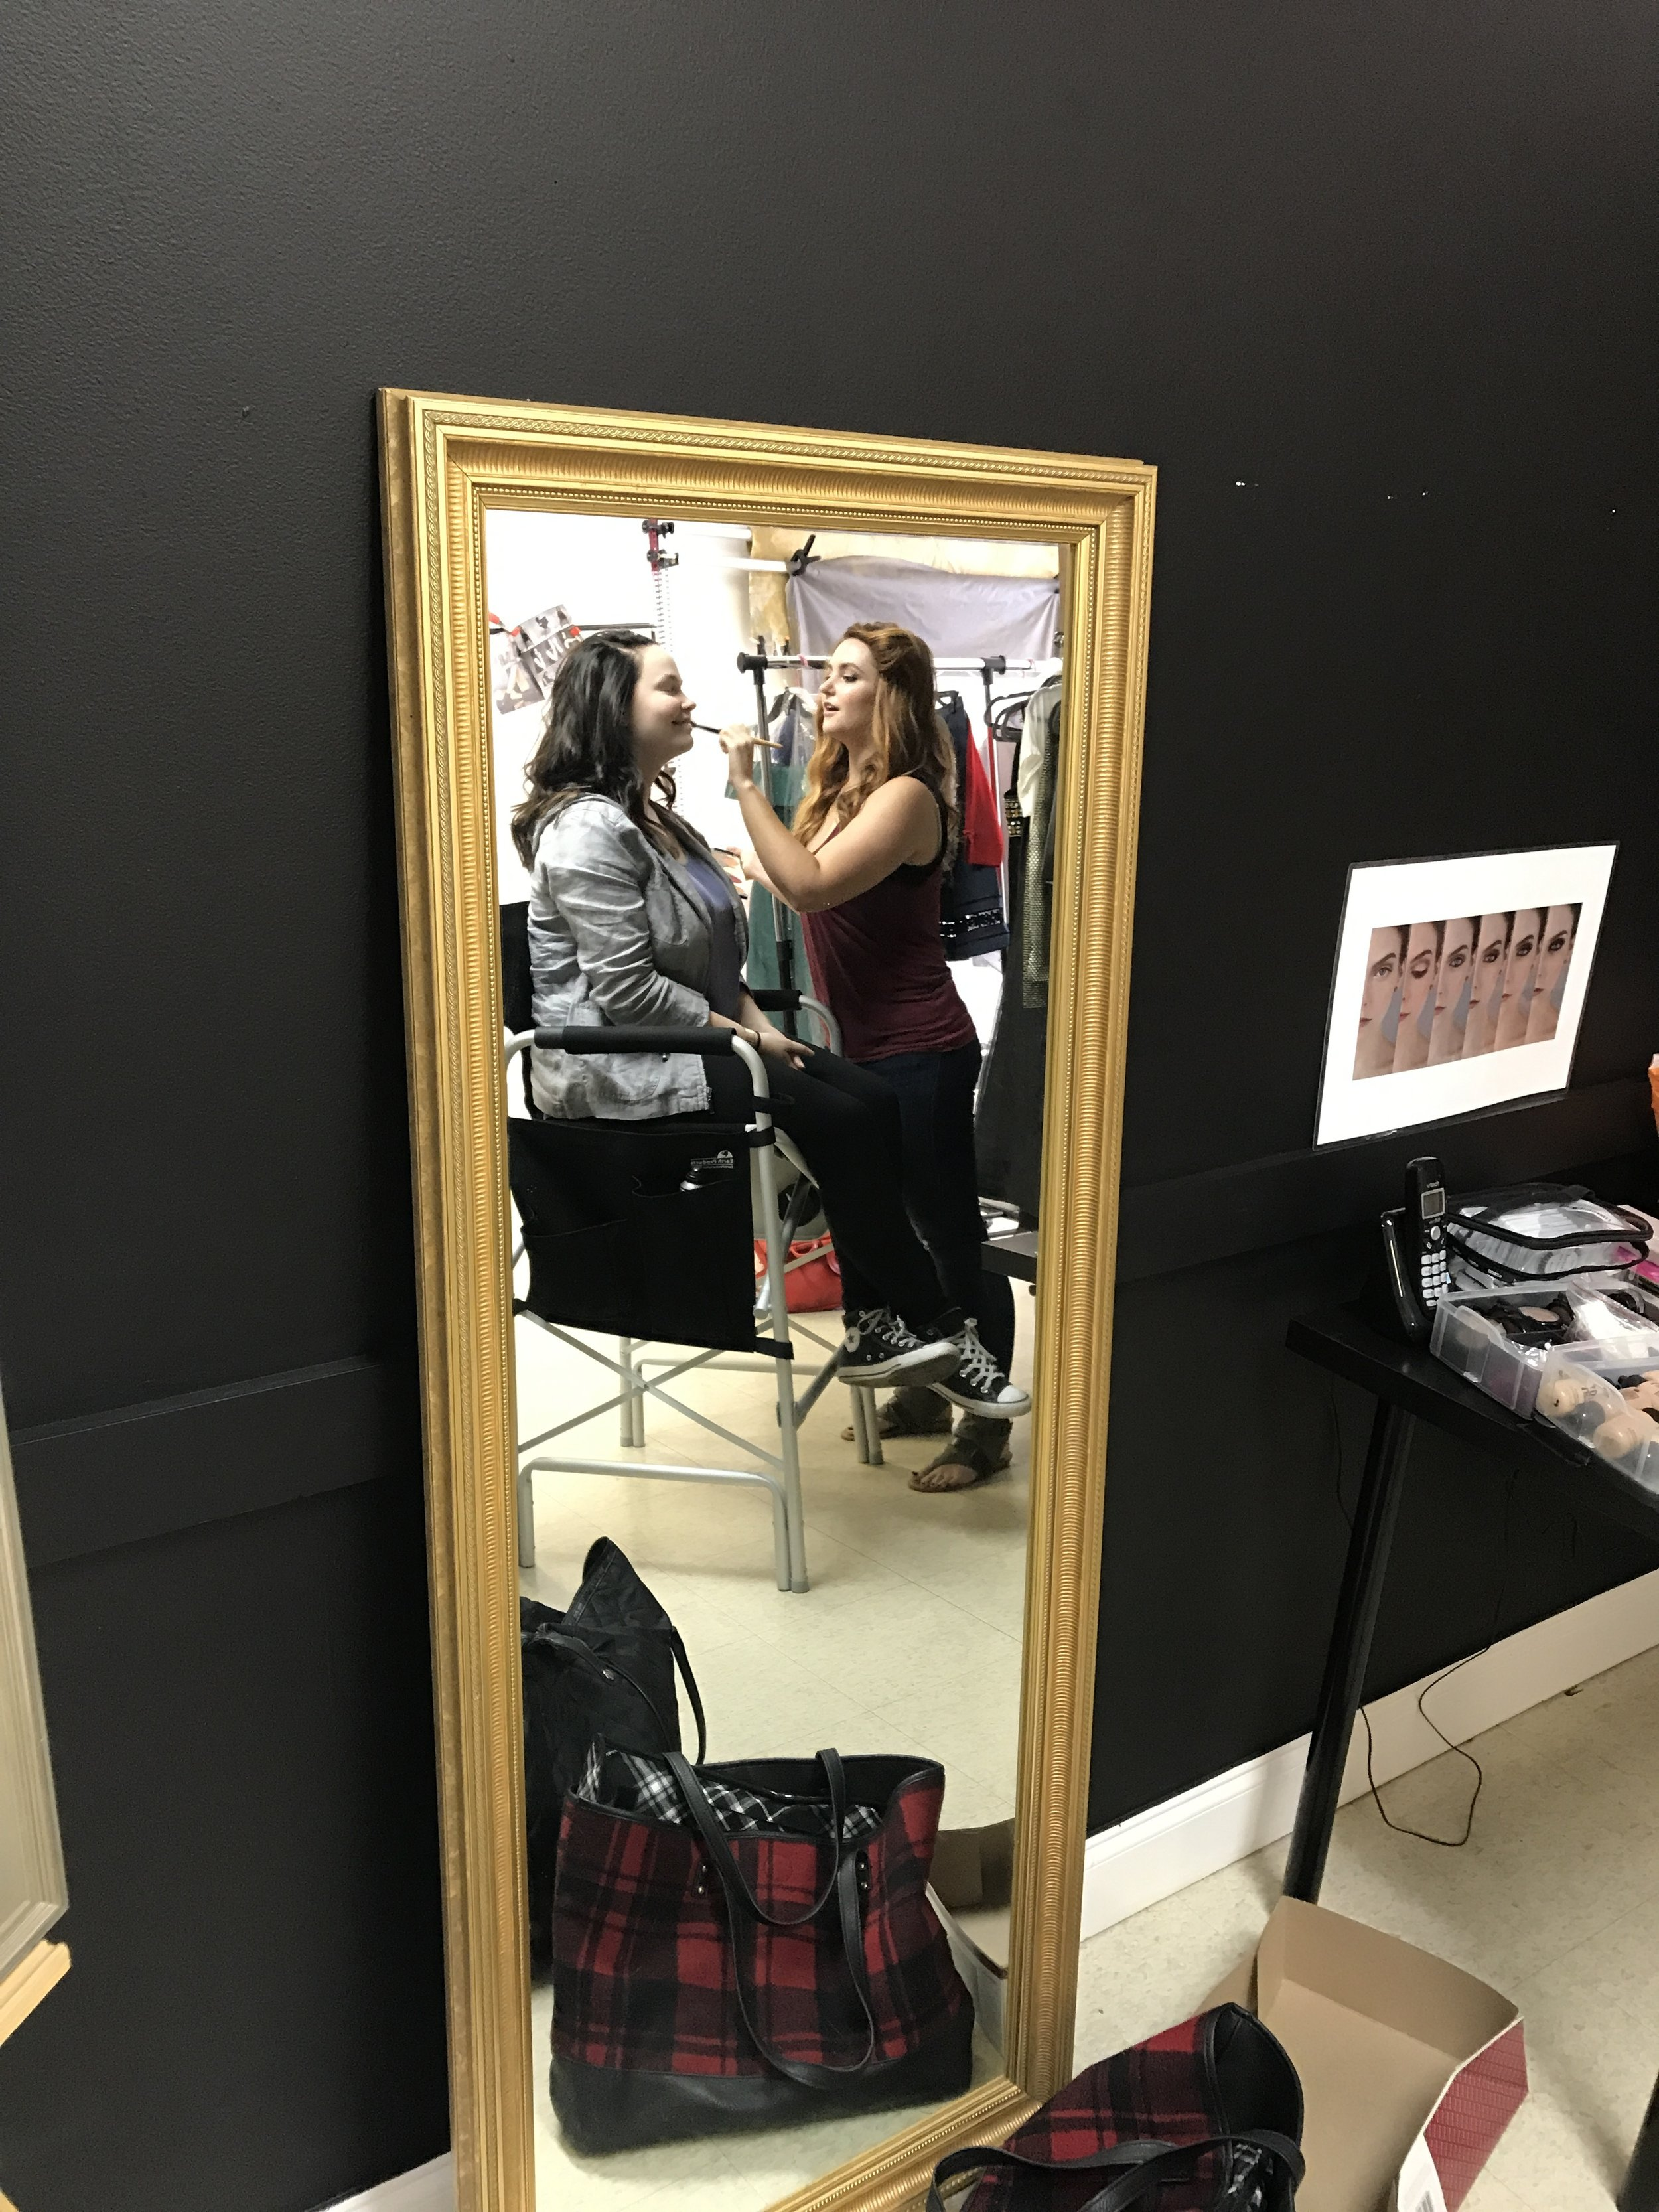 bts - behind the scenes - professional hair and makeup